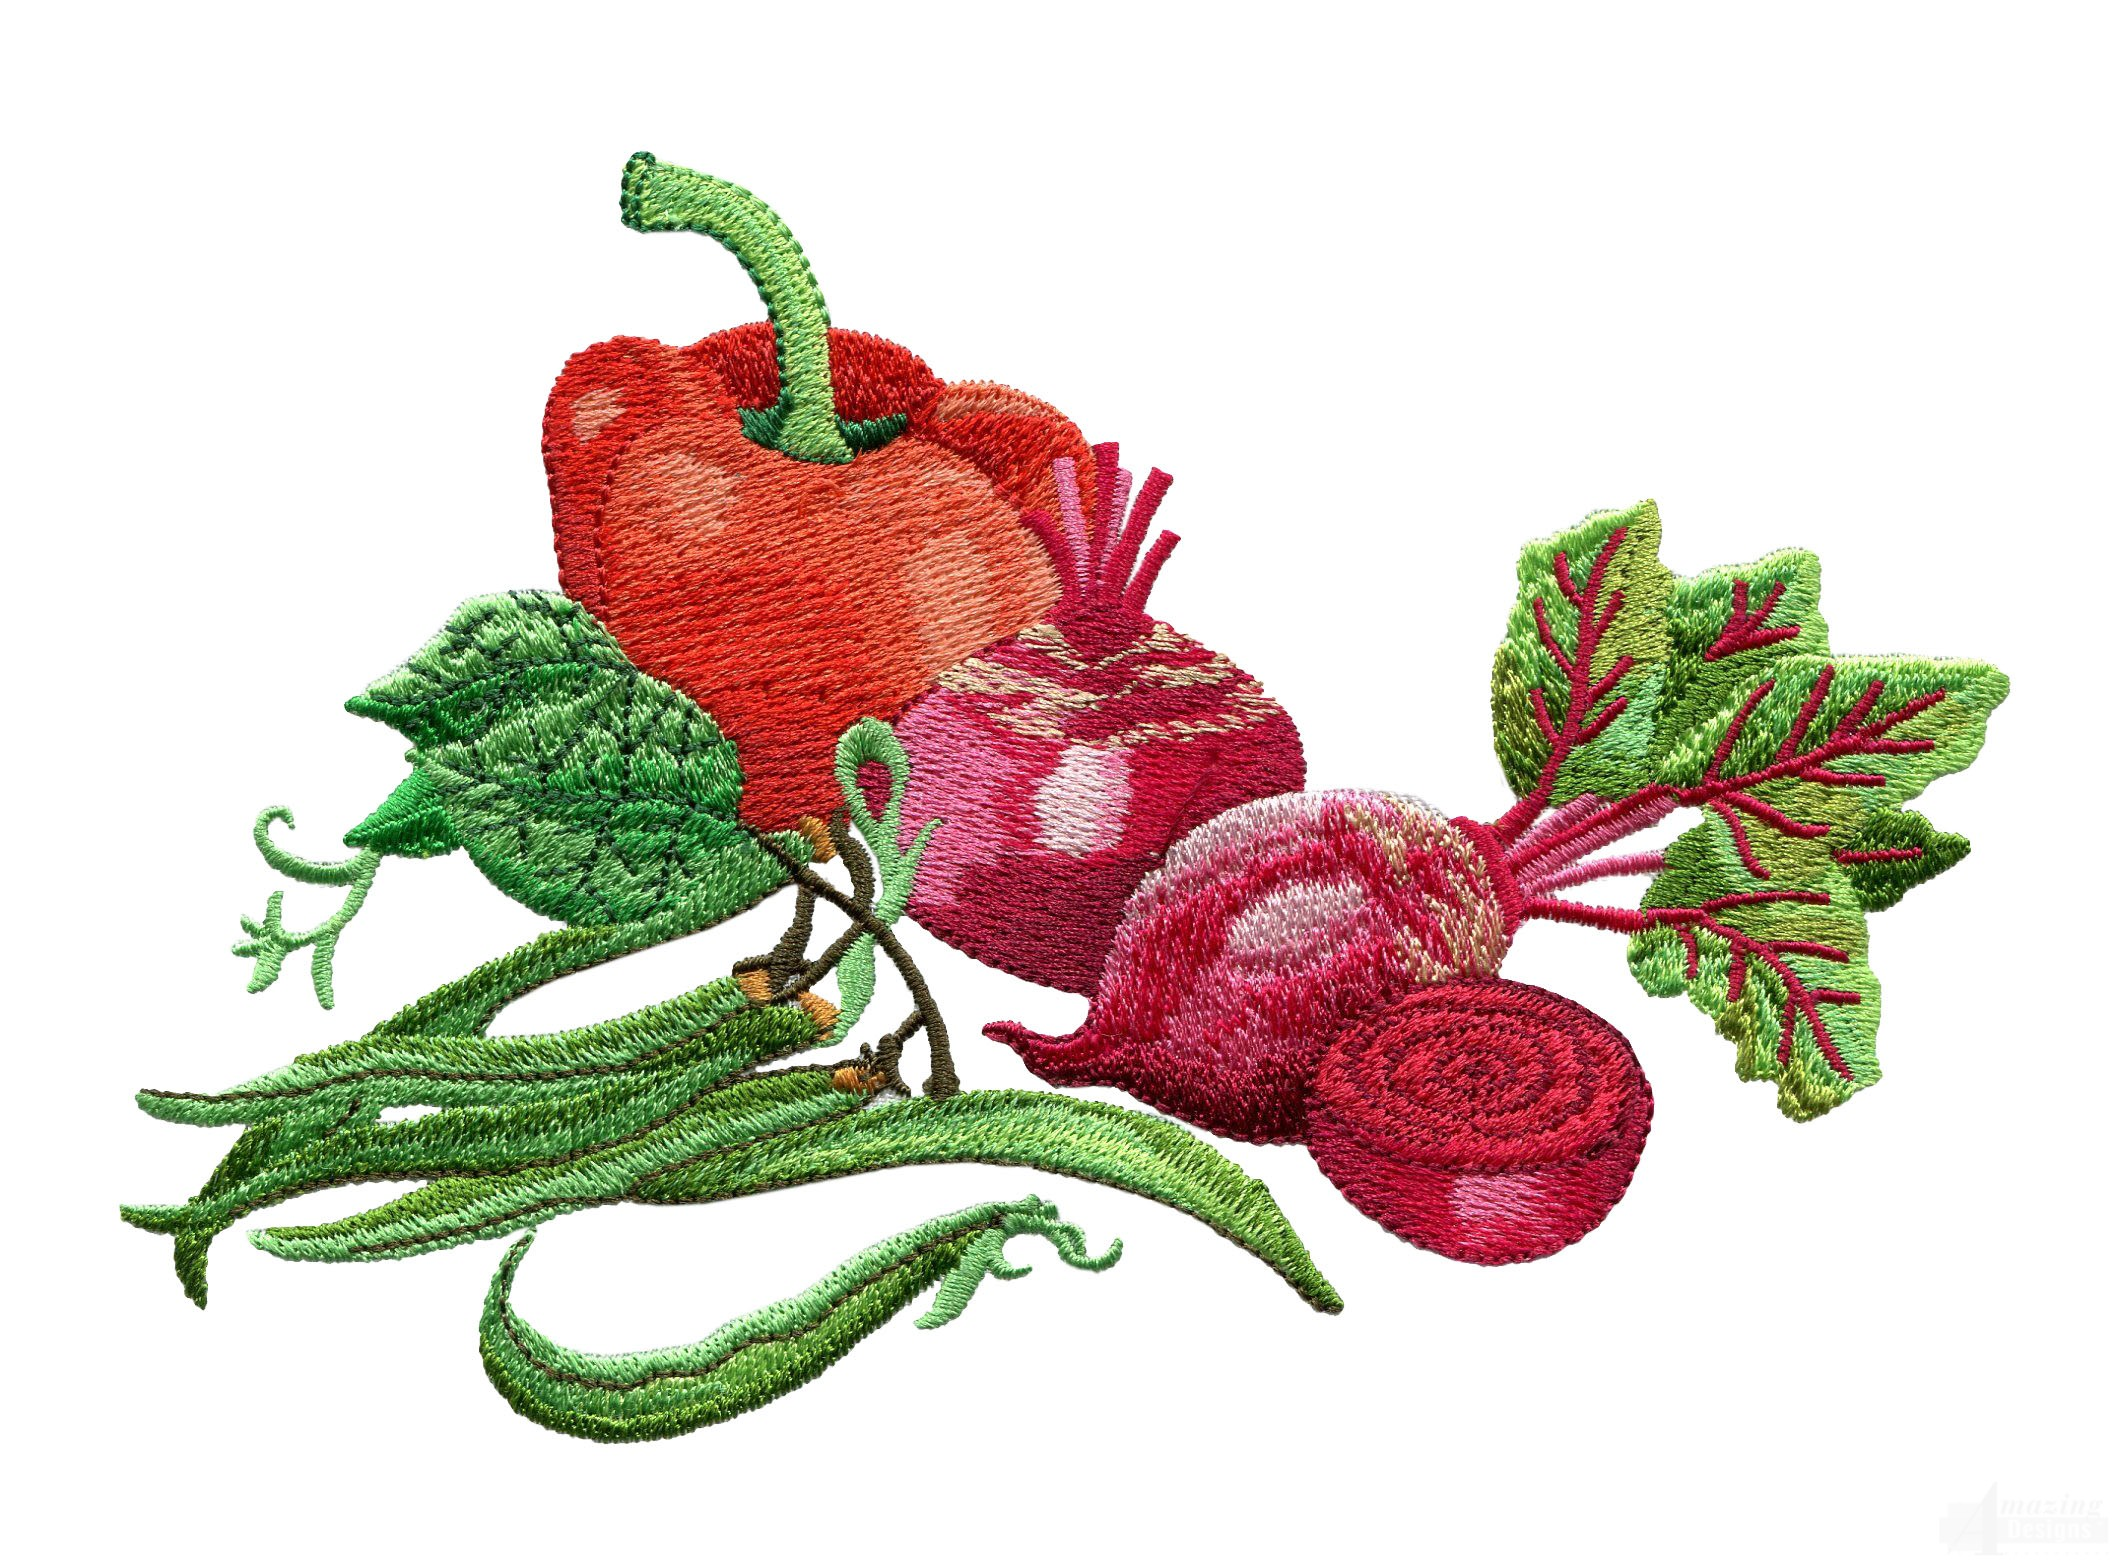 Garden assortment 7 embroidery design for Garden embroidery designs free